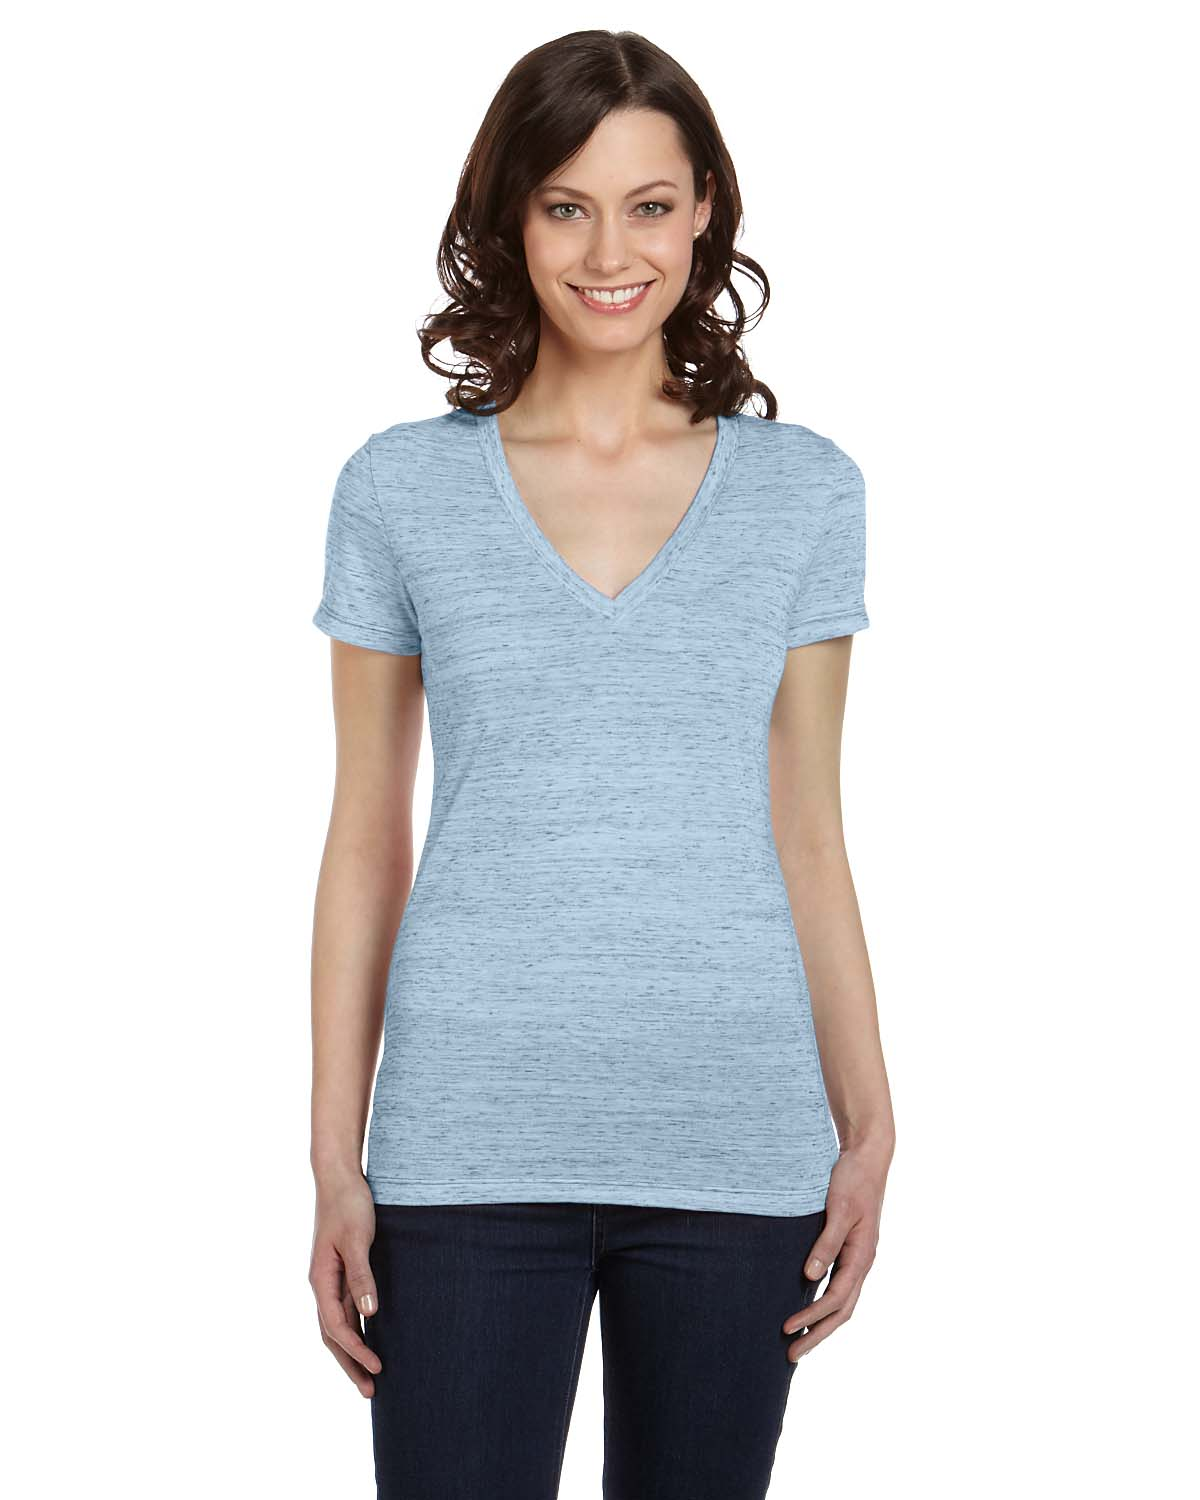 Bella canvas ladies womens deep v neck short sleeve s xl t for Short t shirts ladies